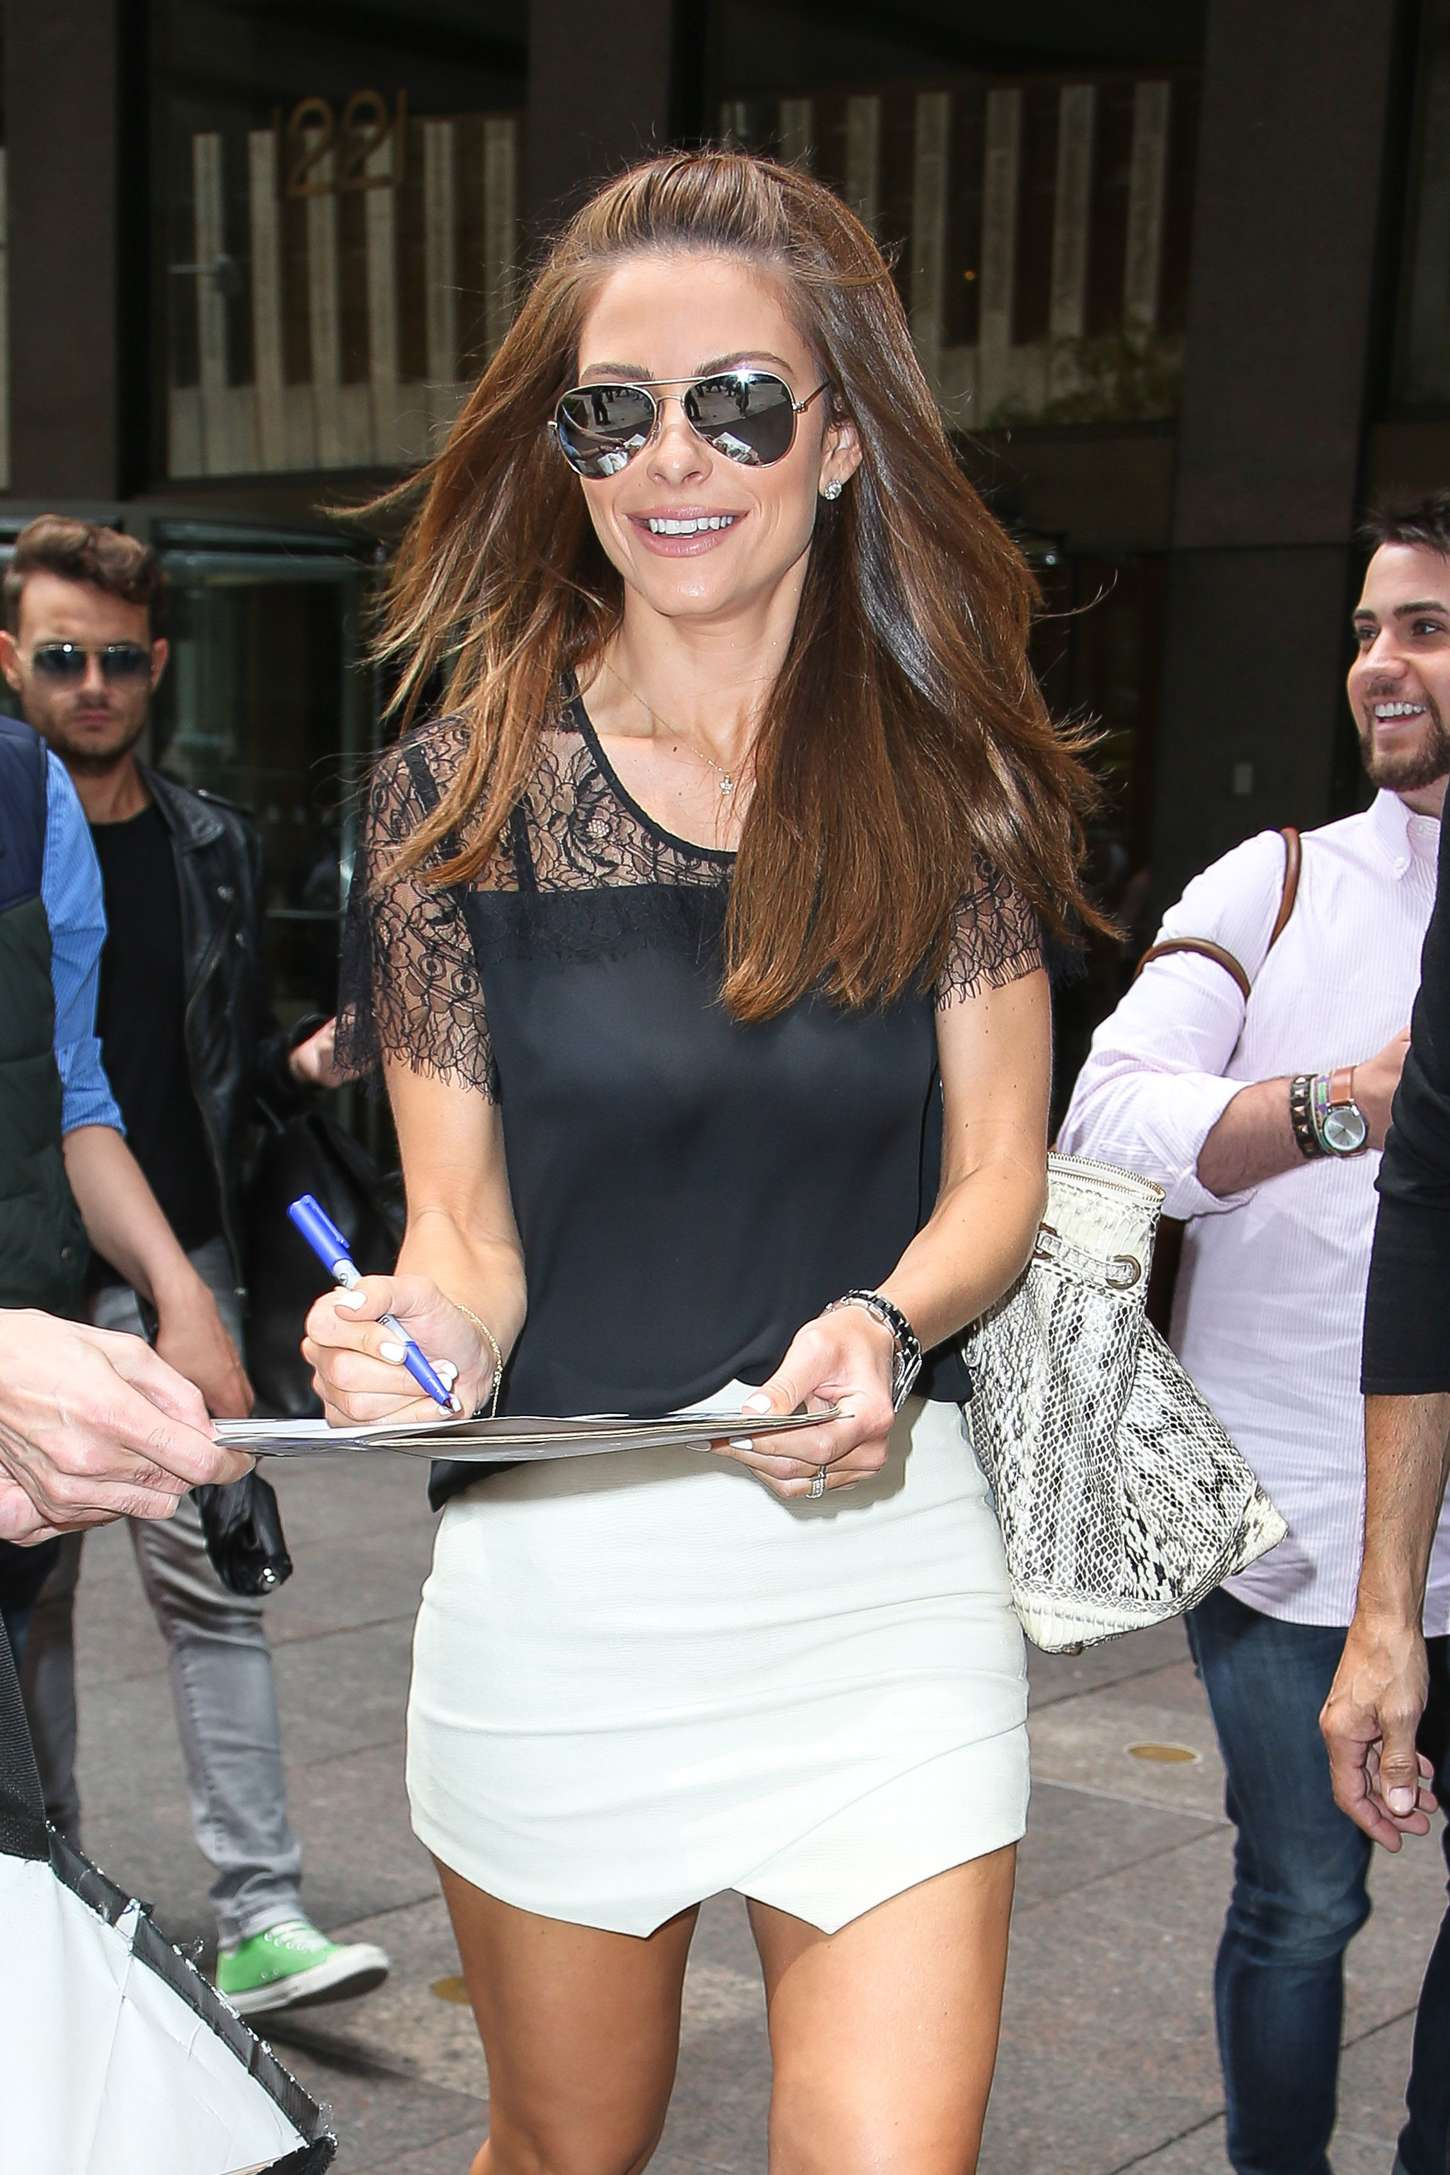 maria menounos signing autographs out in new york city